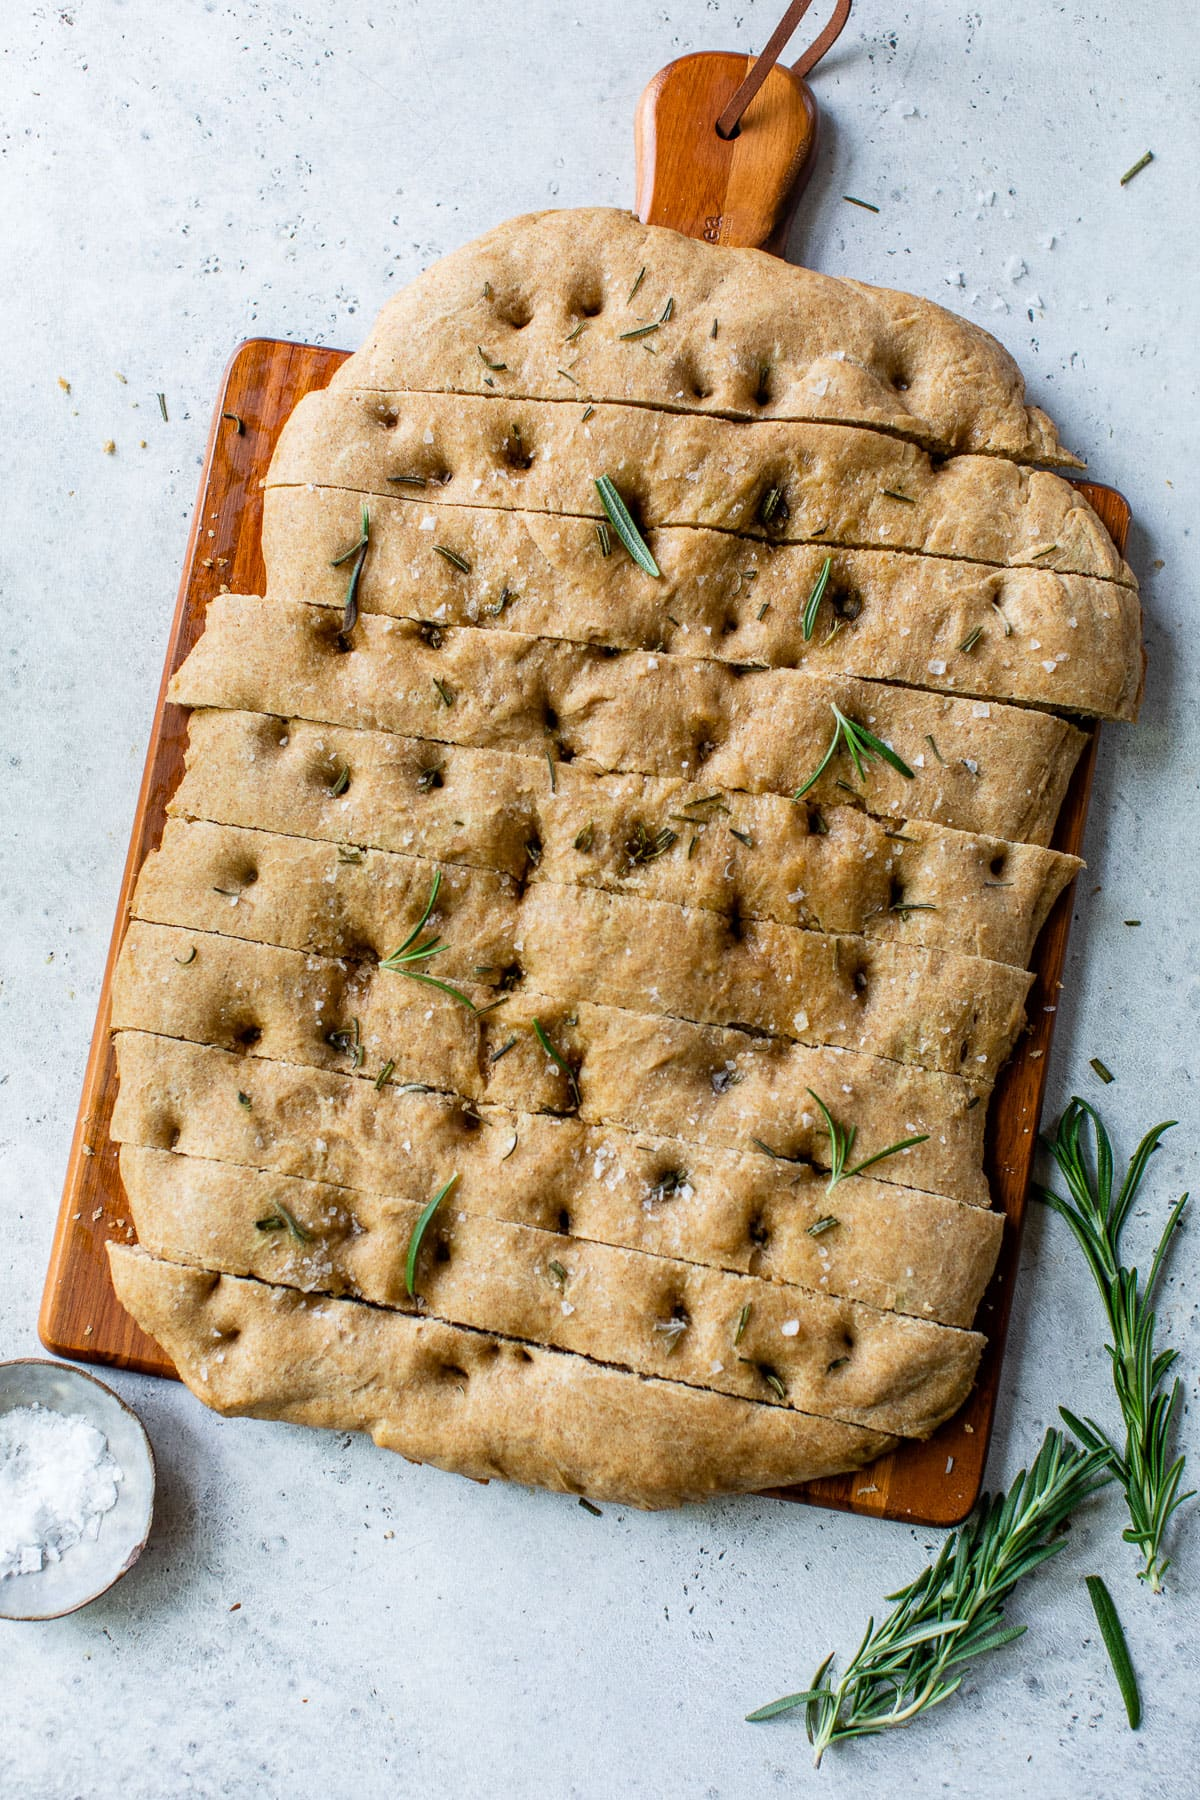 sliced no knead focaccia made with whole wheat flour on a wood serving board